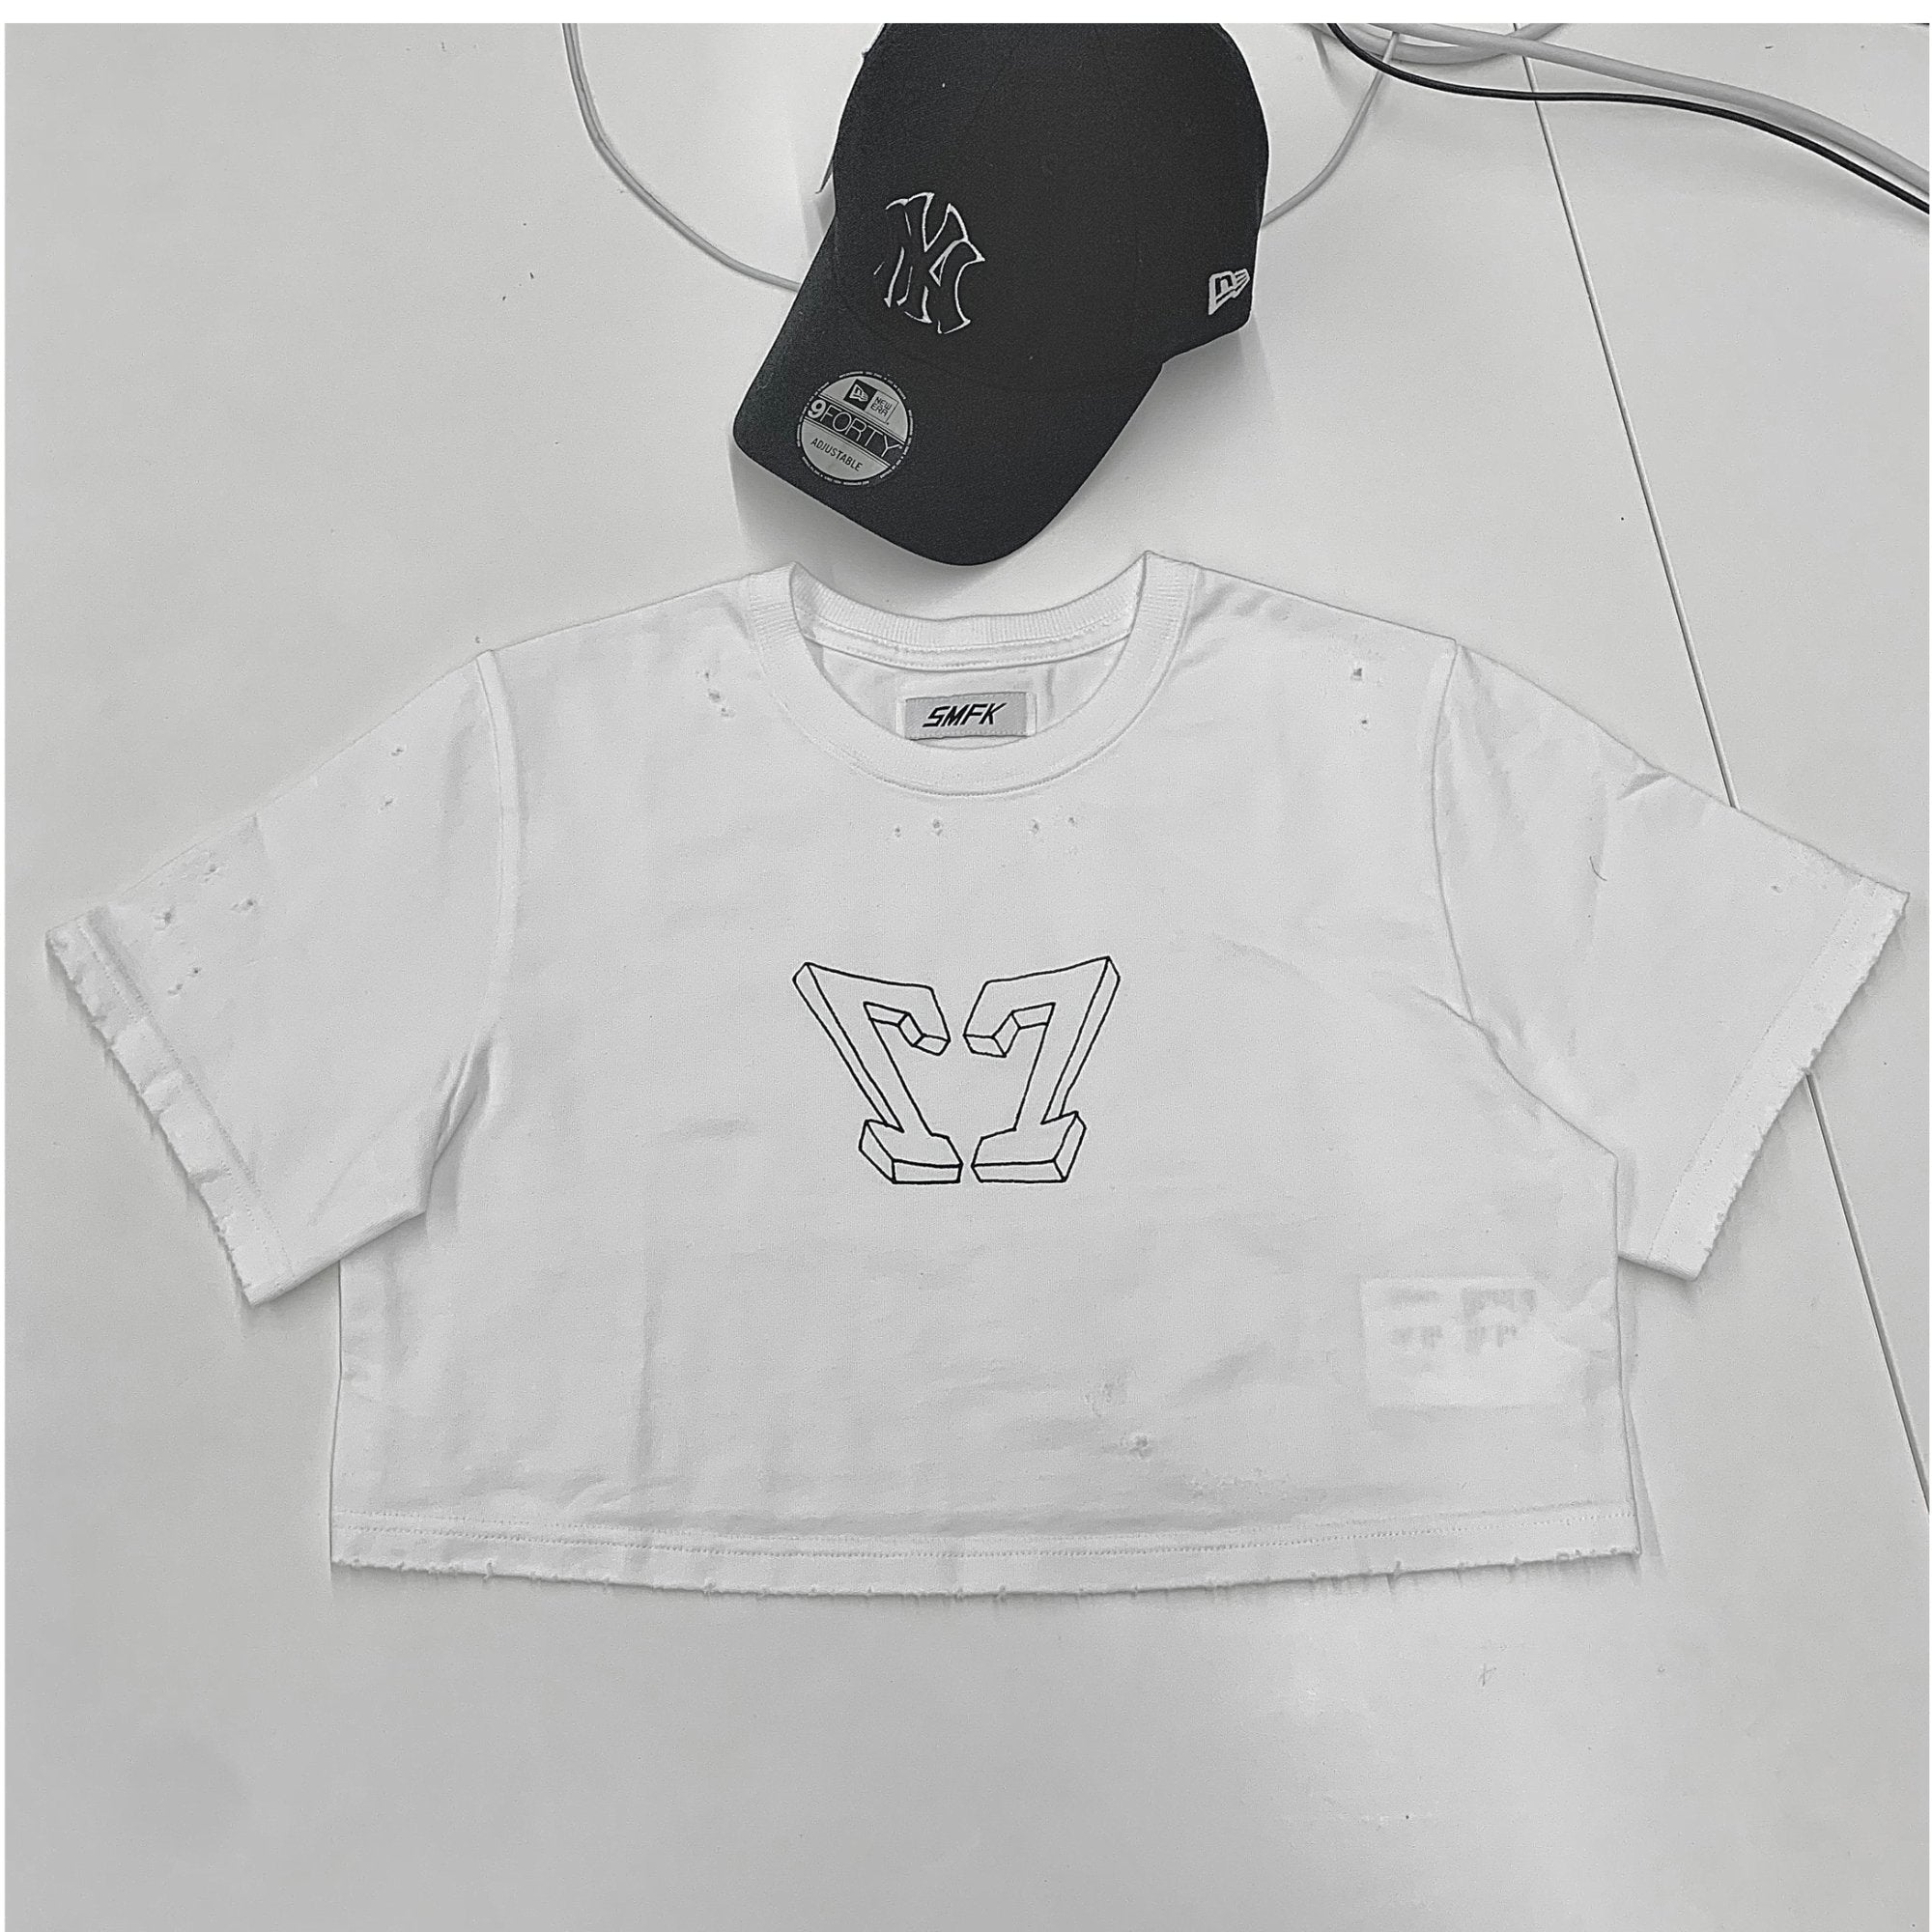 SMFK Baby Vintage Tee White | MADA IN CHINA